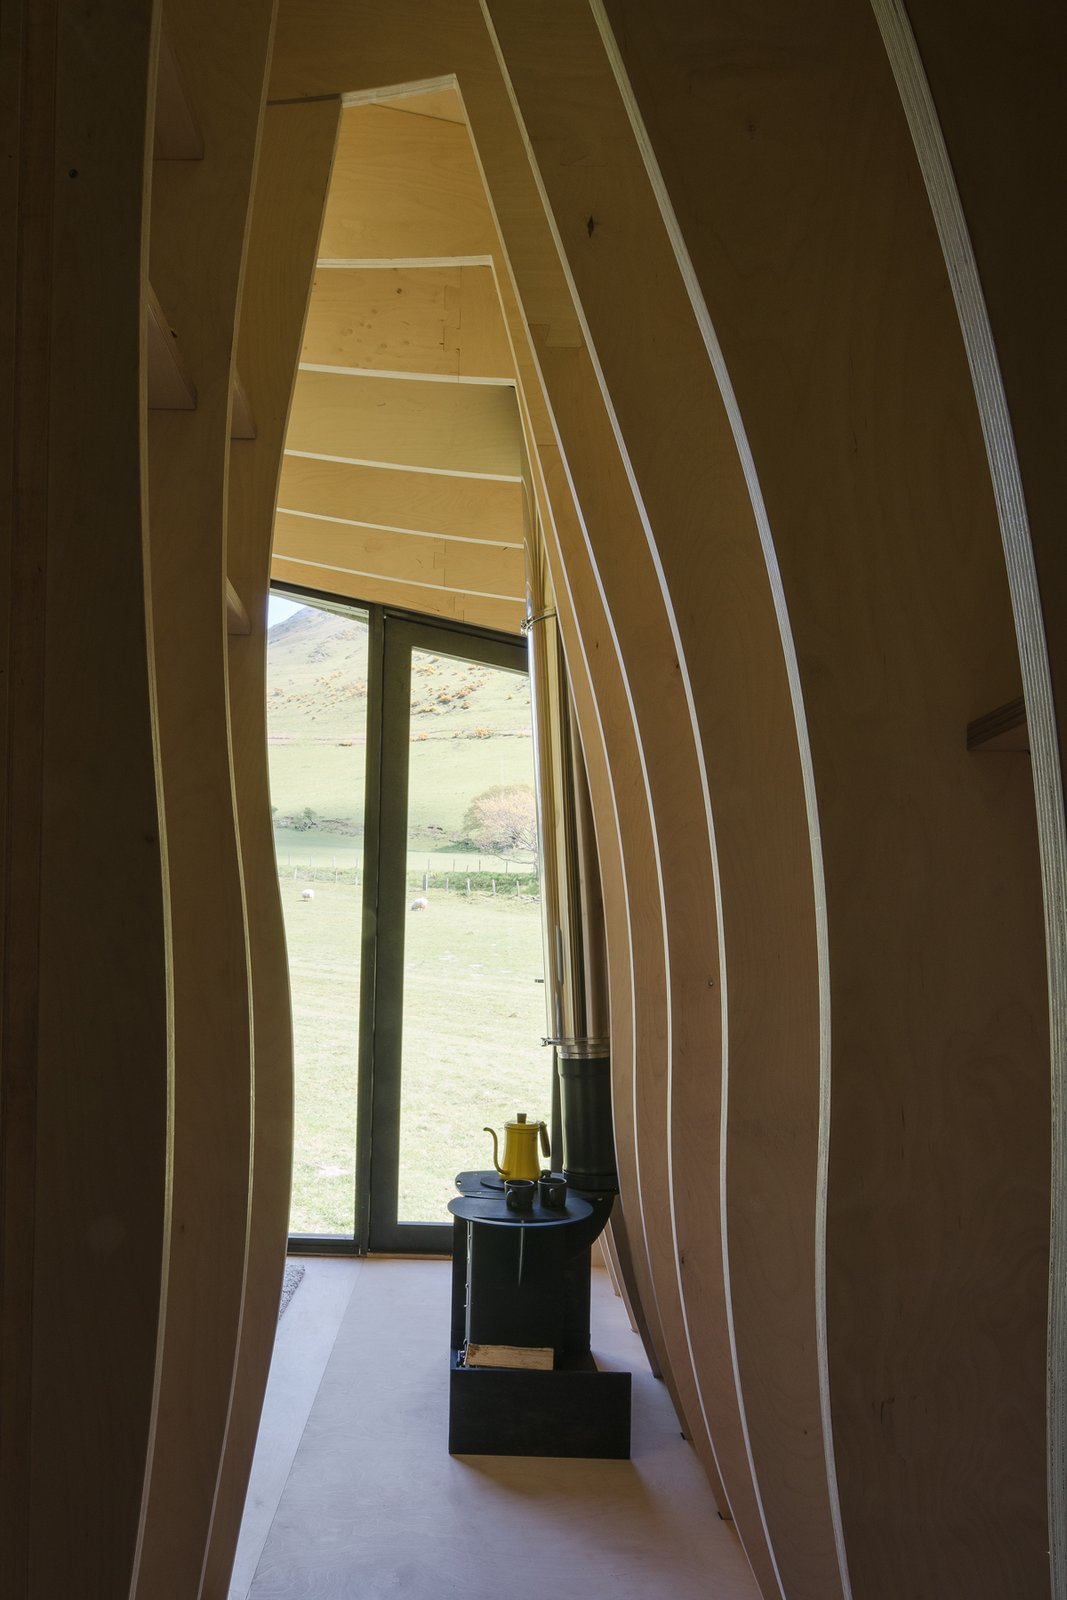 Photo 7 of 11 in Tour One of Epic Retreat's Tiny Pop-Up Hotel Cabins in the Welsh Countryside